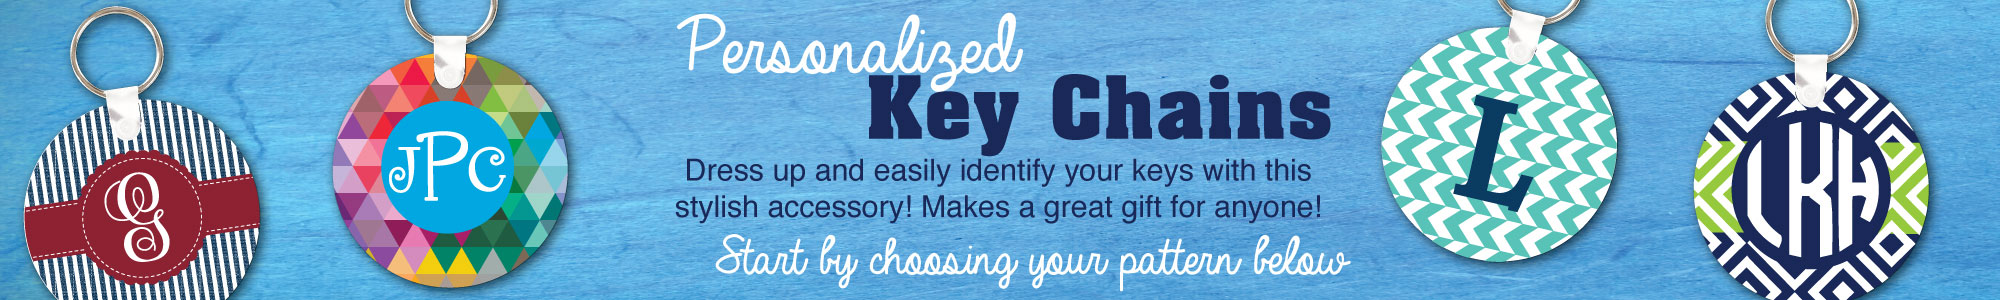 Personalized key chains. Dress up and easily identify your kets with this stylish accessory! Makes a great gift for anyone.